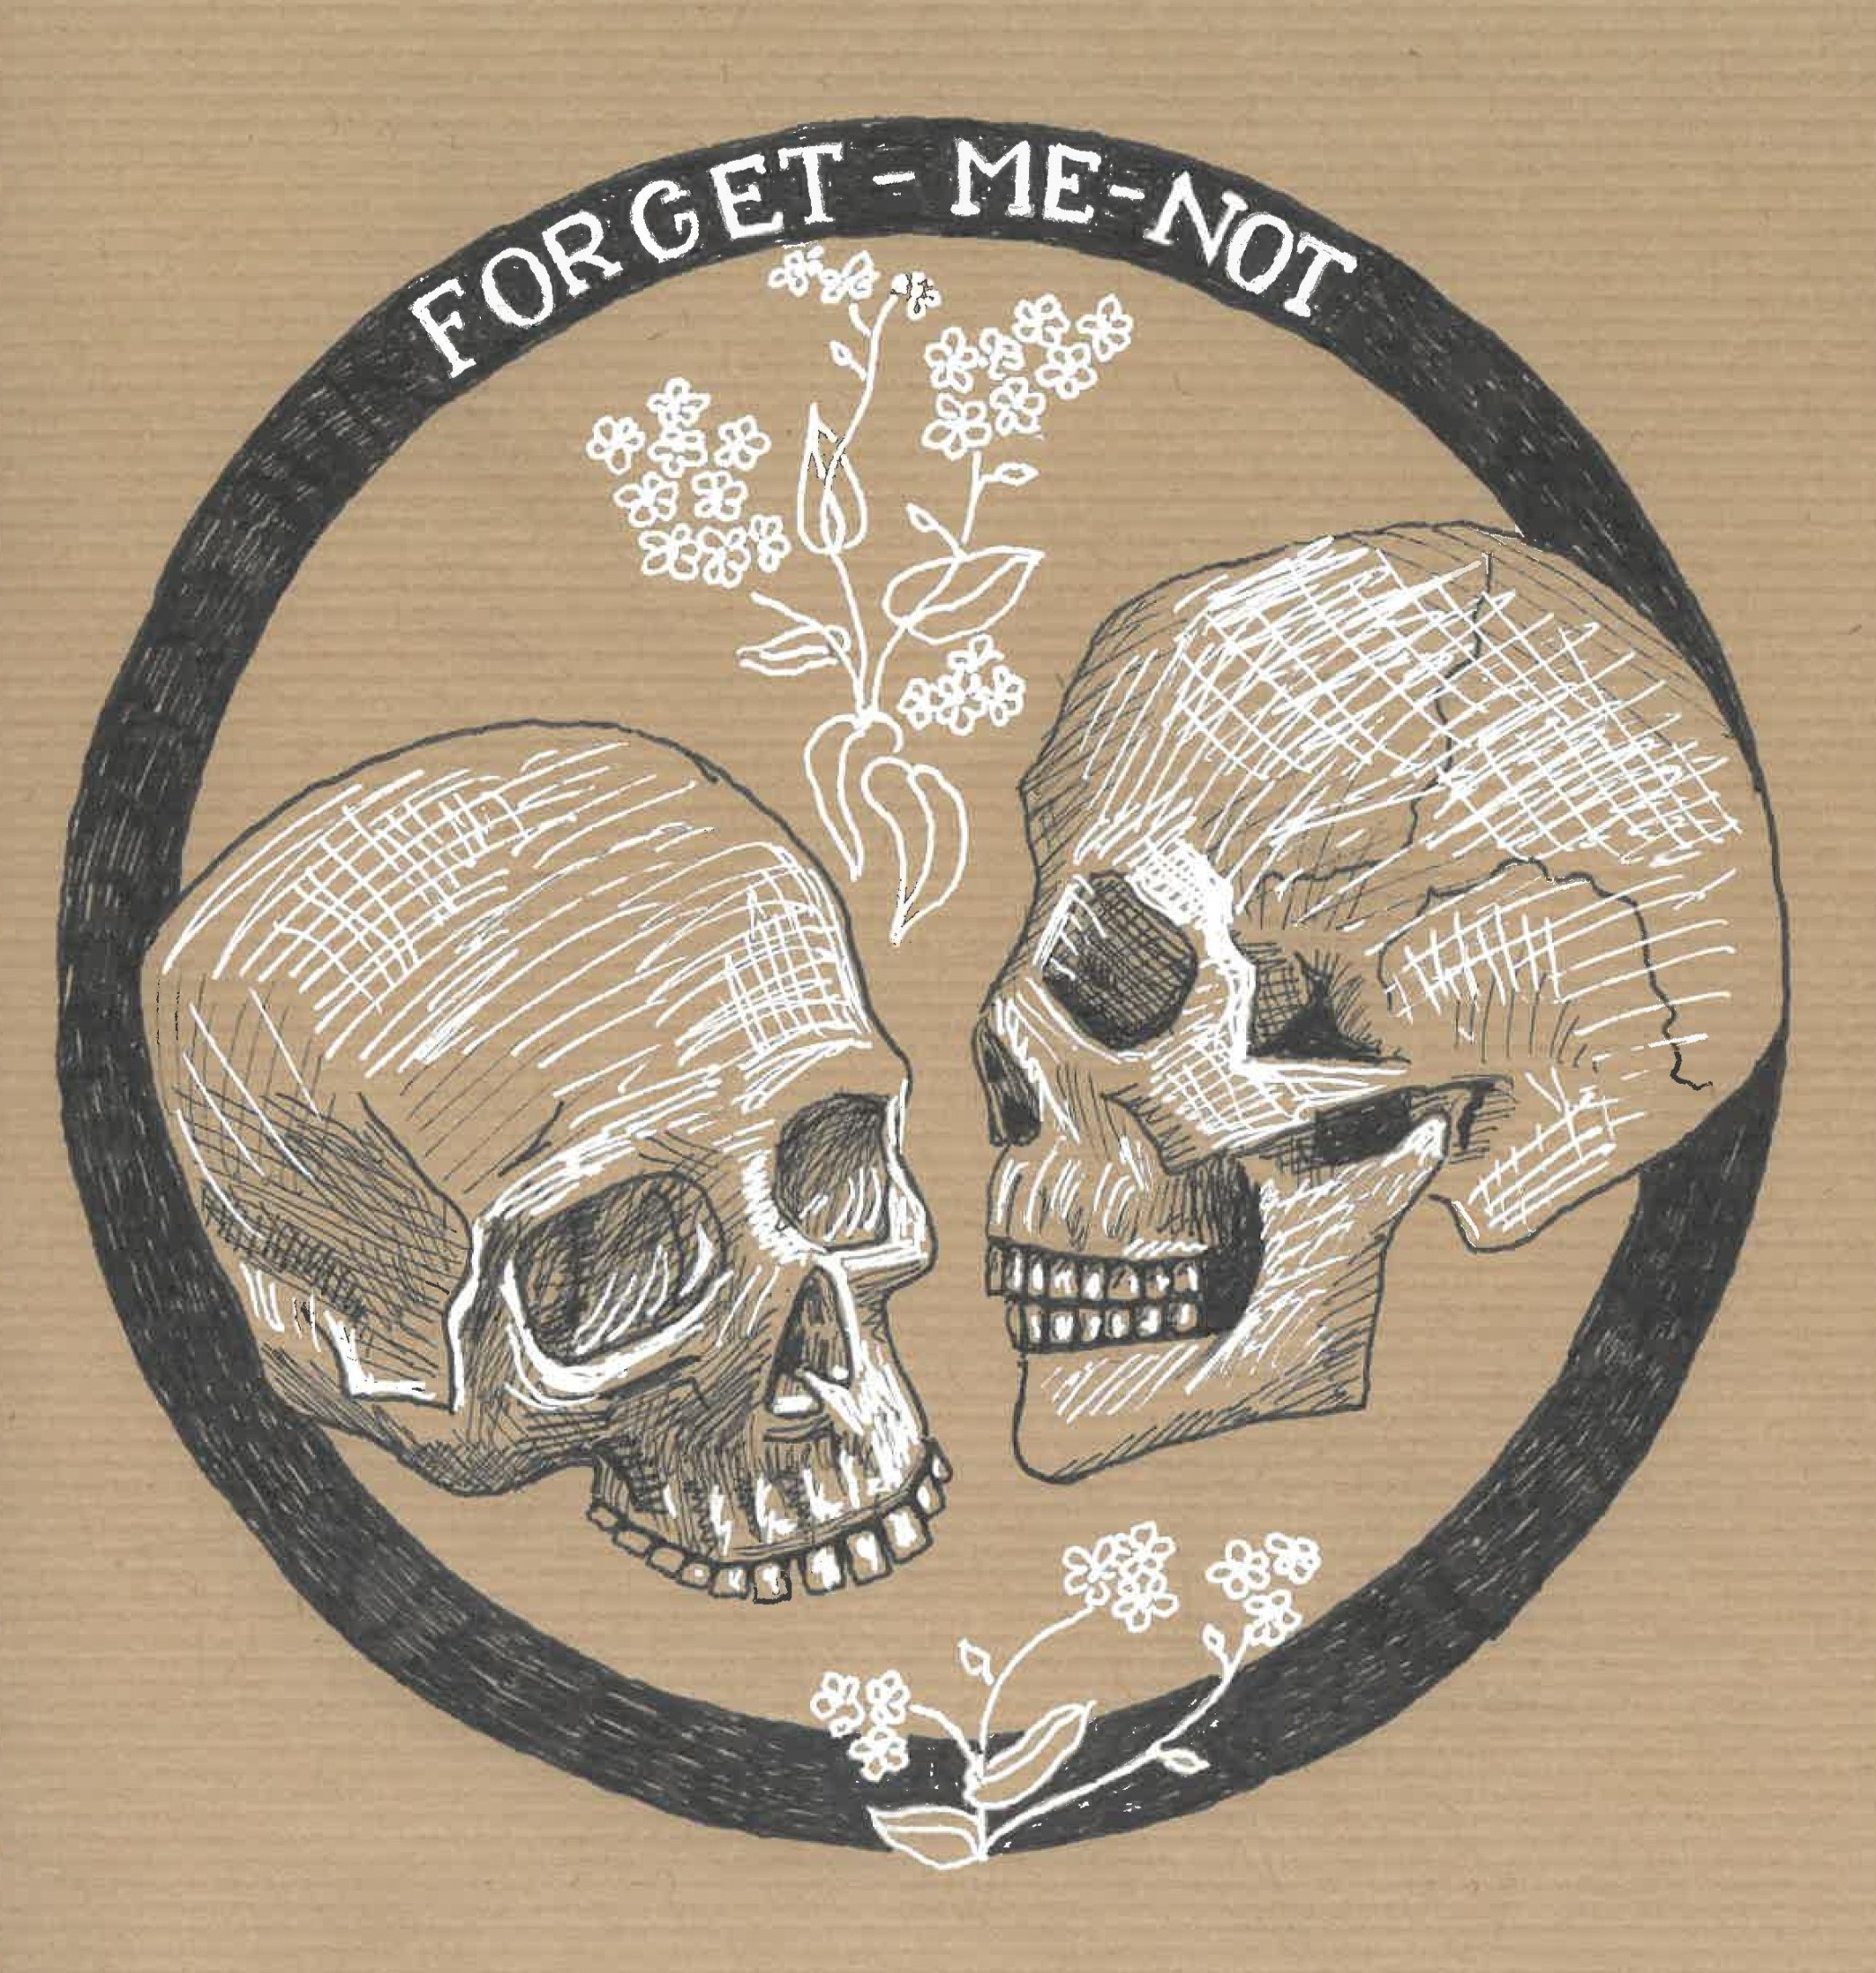 Forget-Me-Not version 2